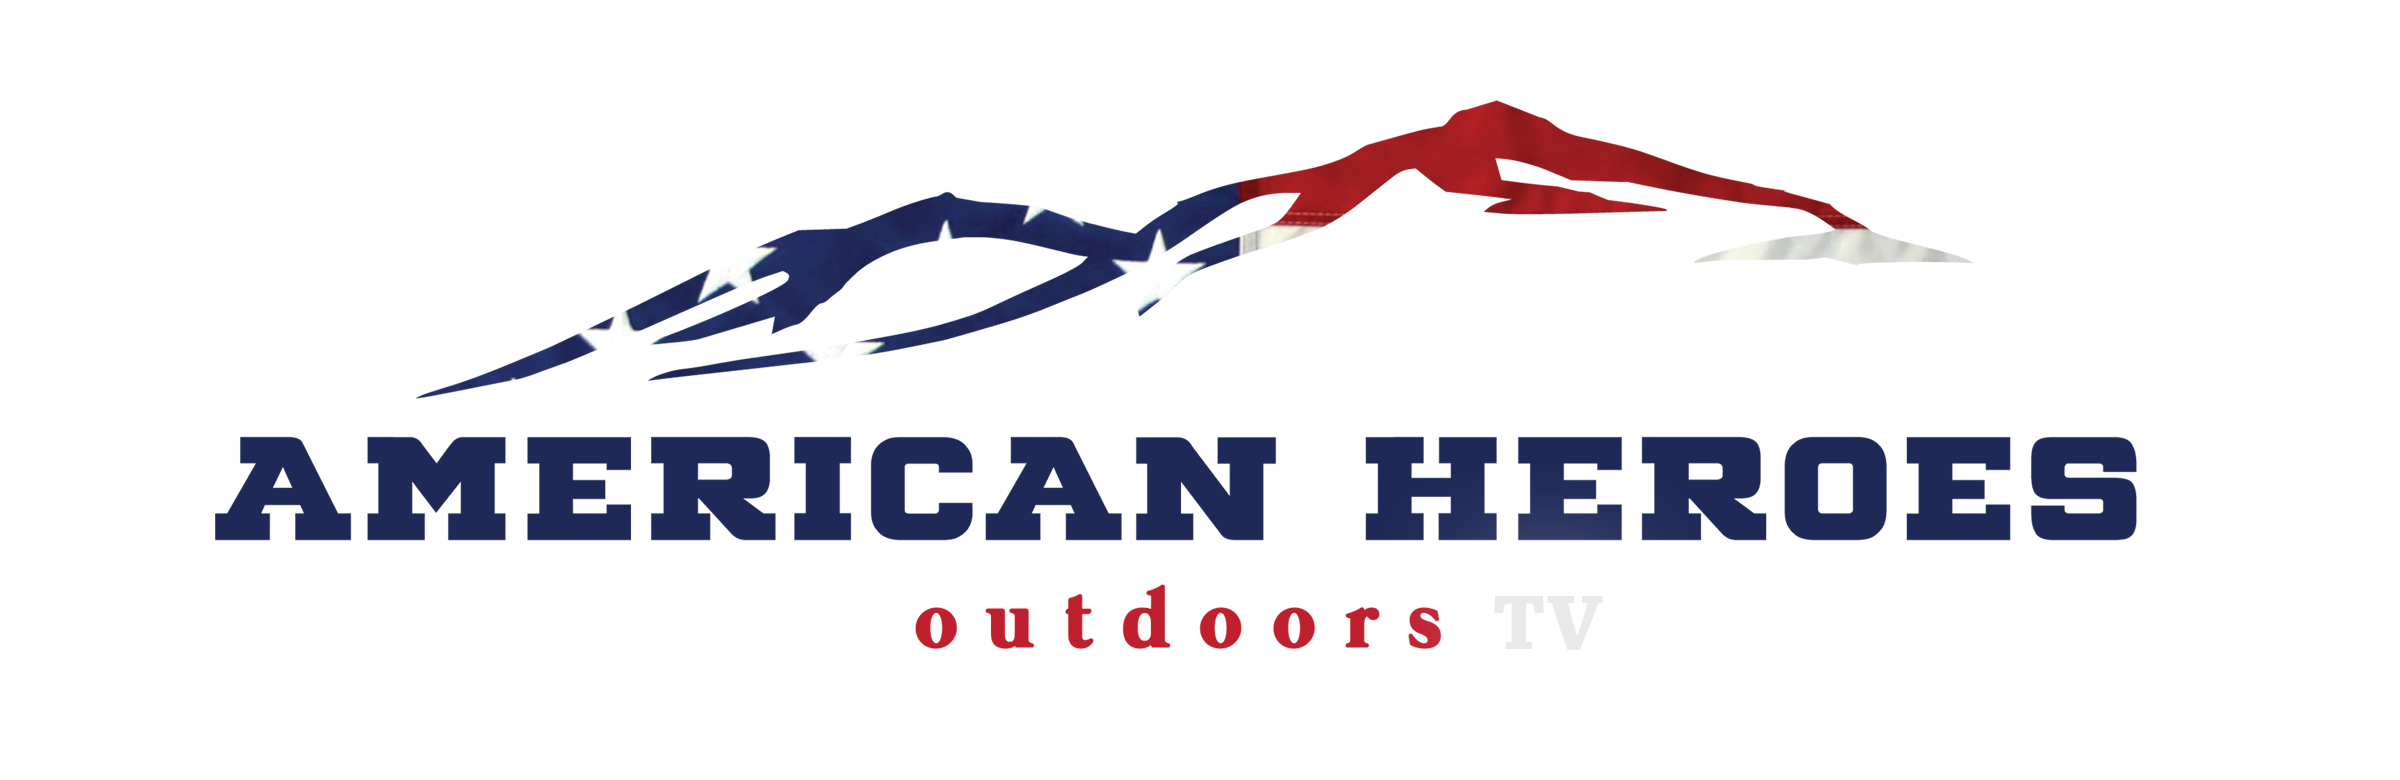 American Heroes Outdoors Television